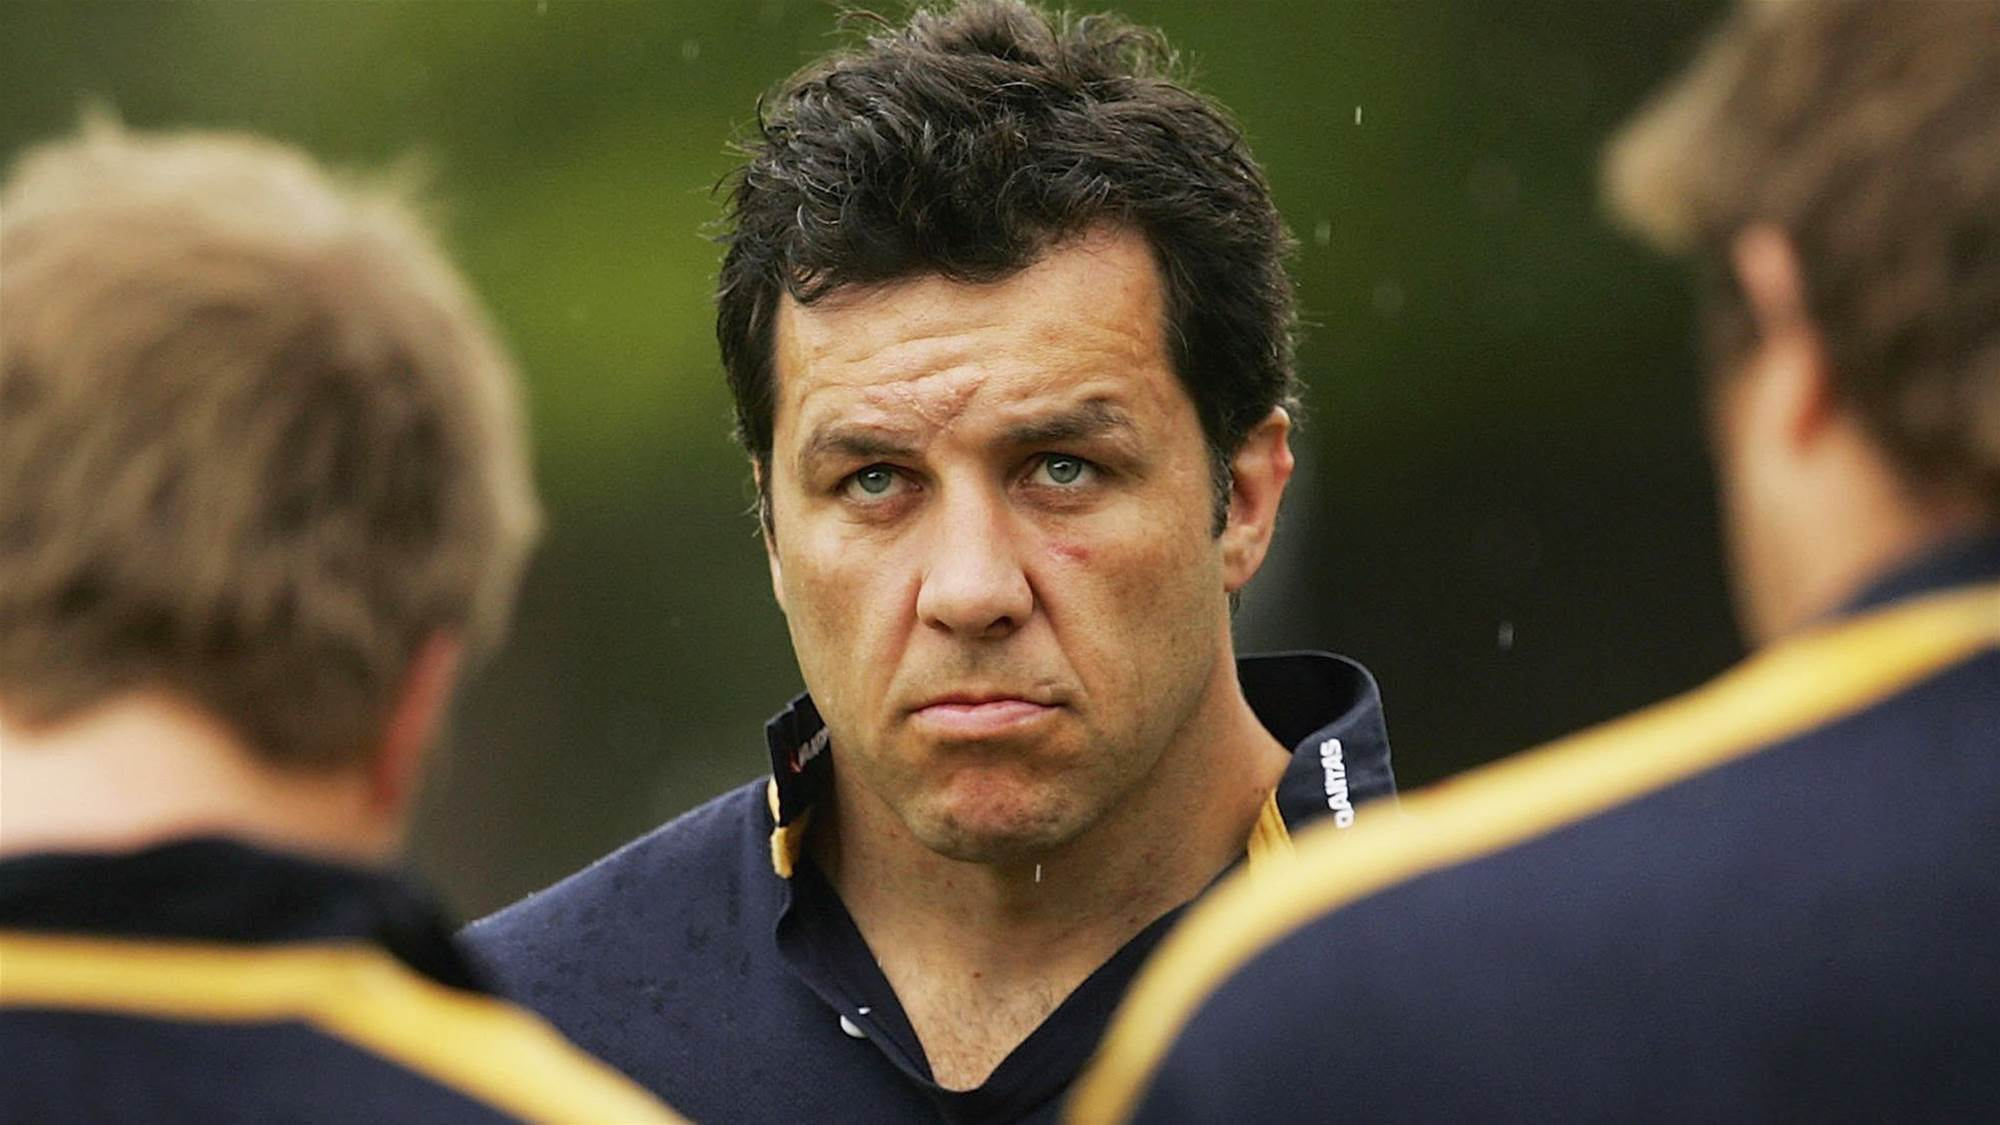 Former Wallaby predicts death of Australian rugby